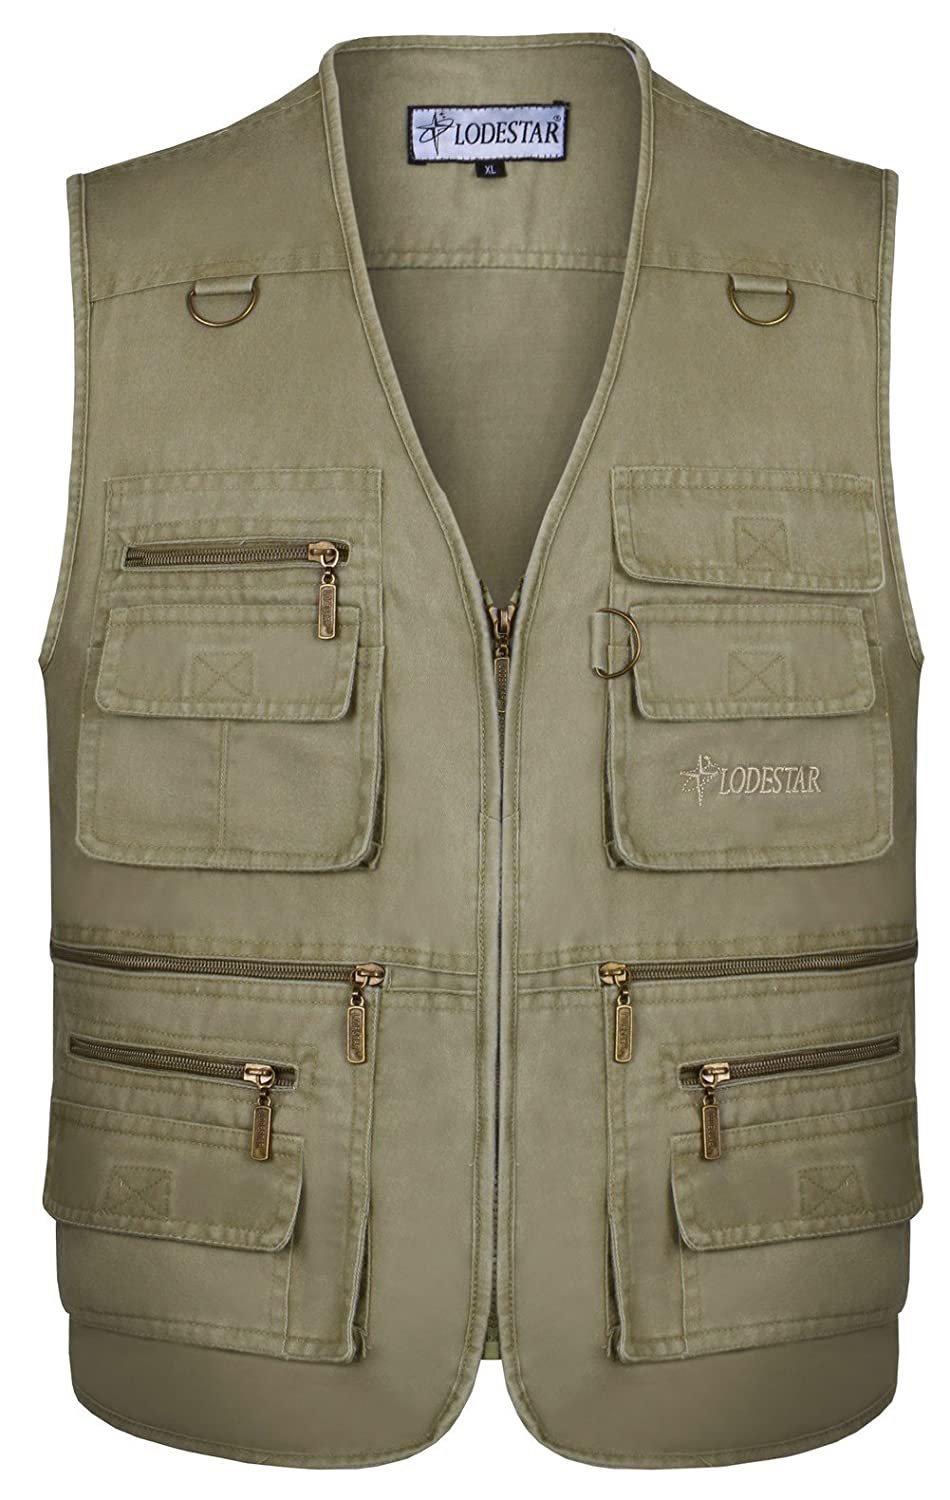 JIINN Mens Outdoor Breathable Cotton Vest Multi-Pocketed Waistcoat Safari Sightseeing Camping Traveling Photography or Any Adventure Jacket Fishing Gilet